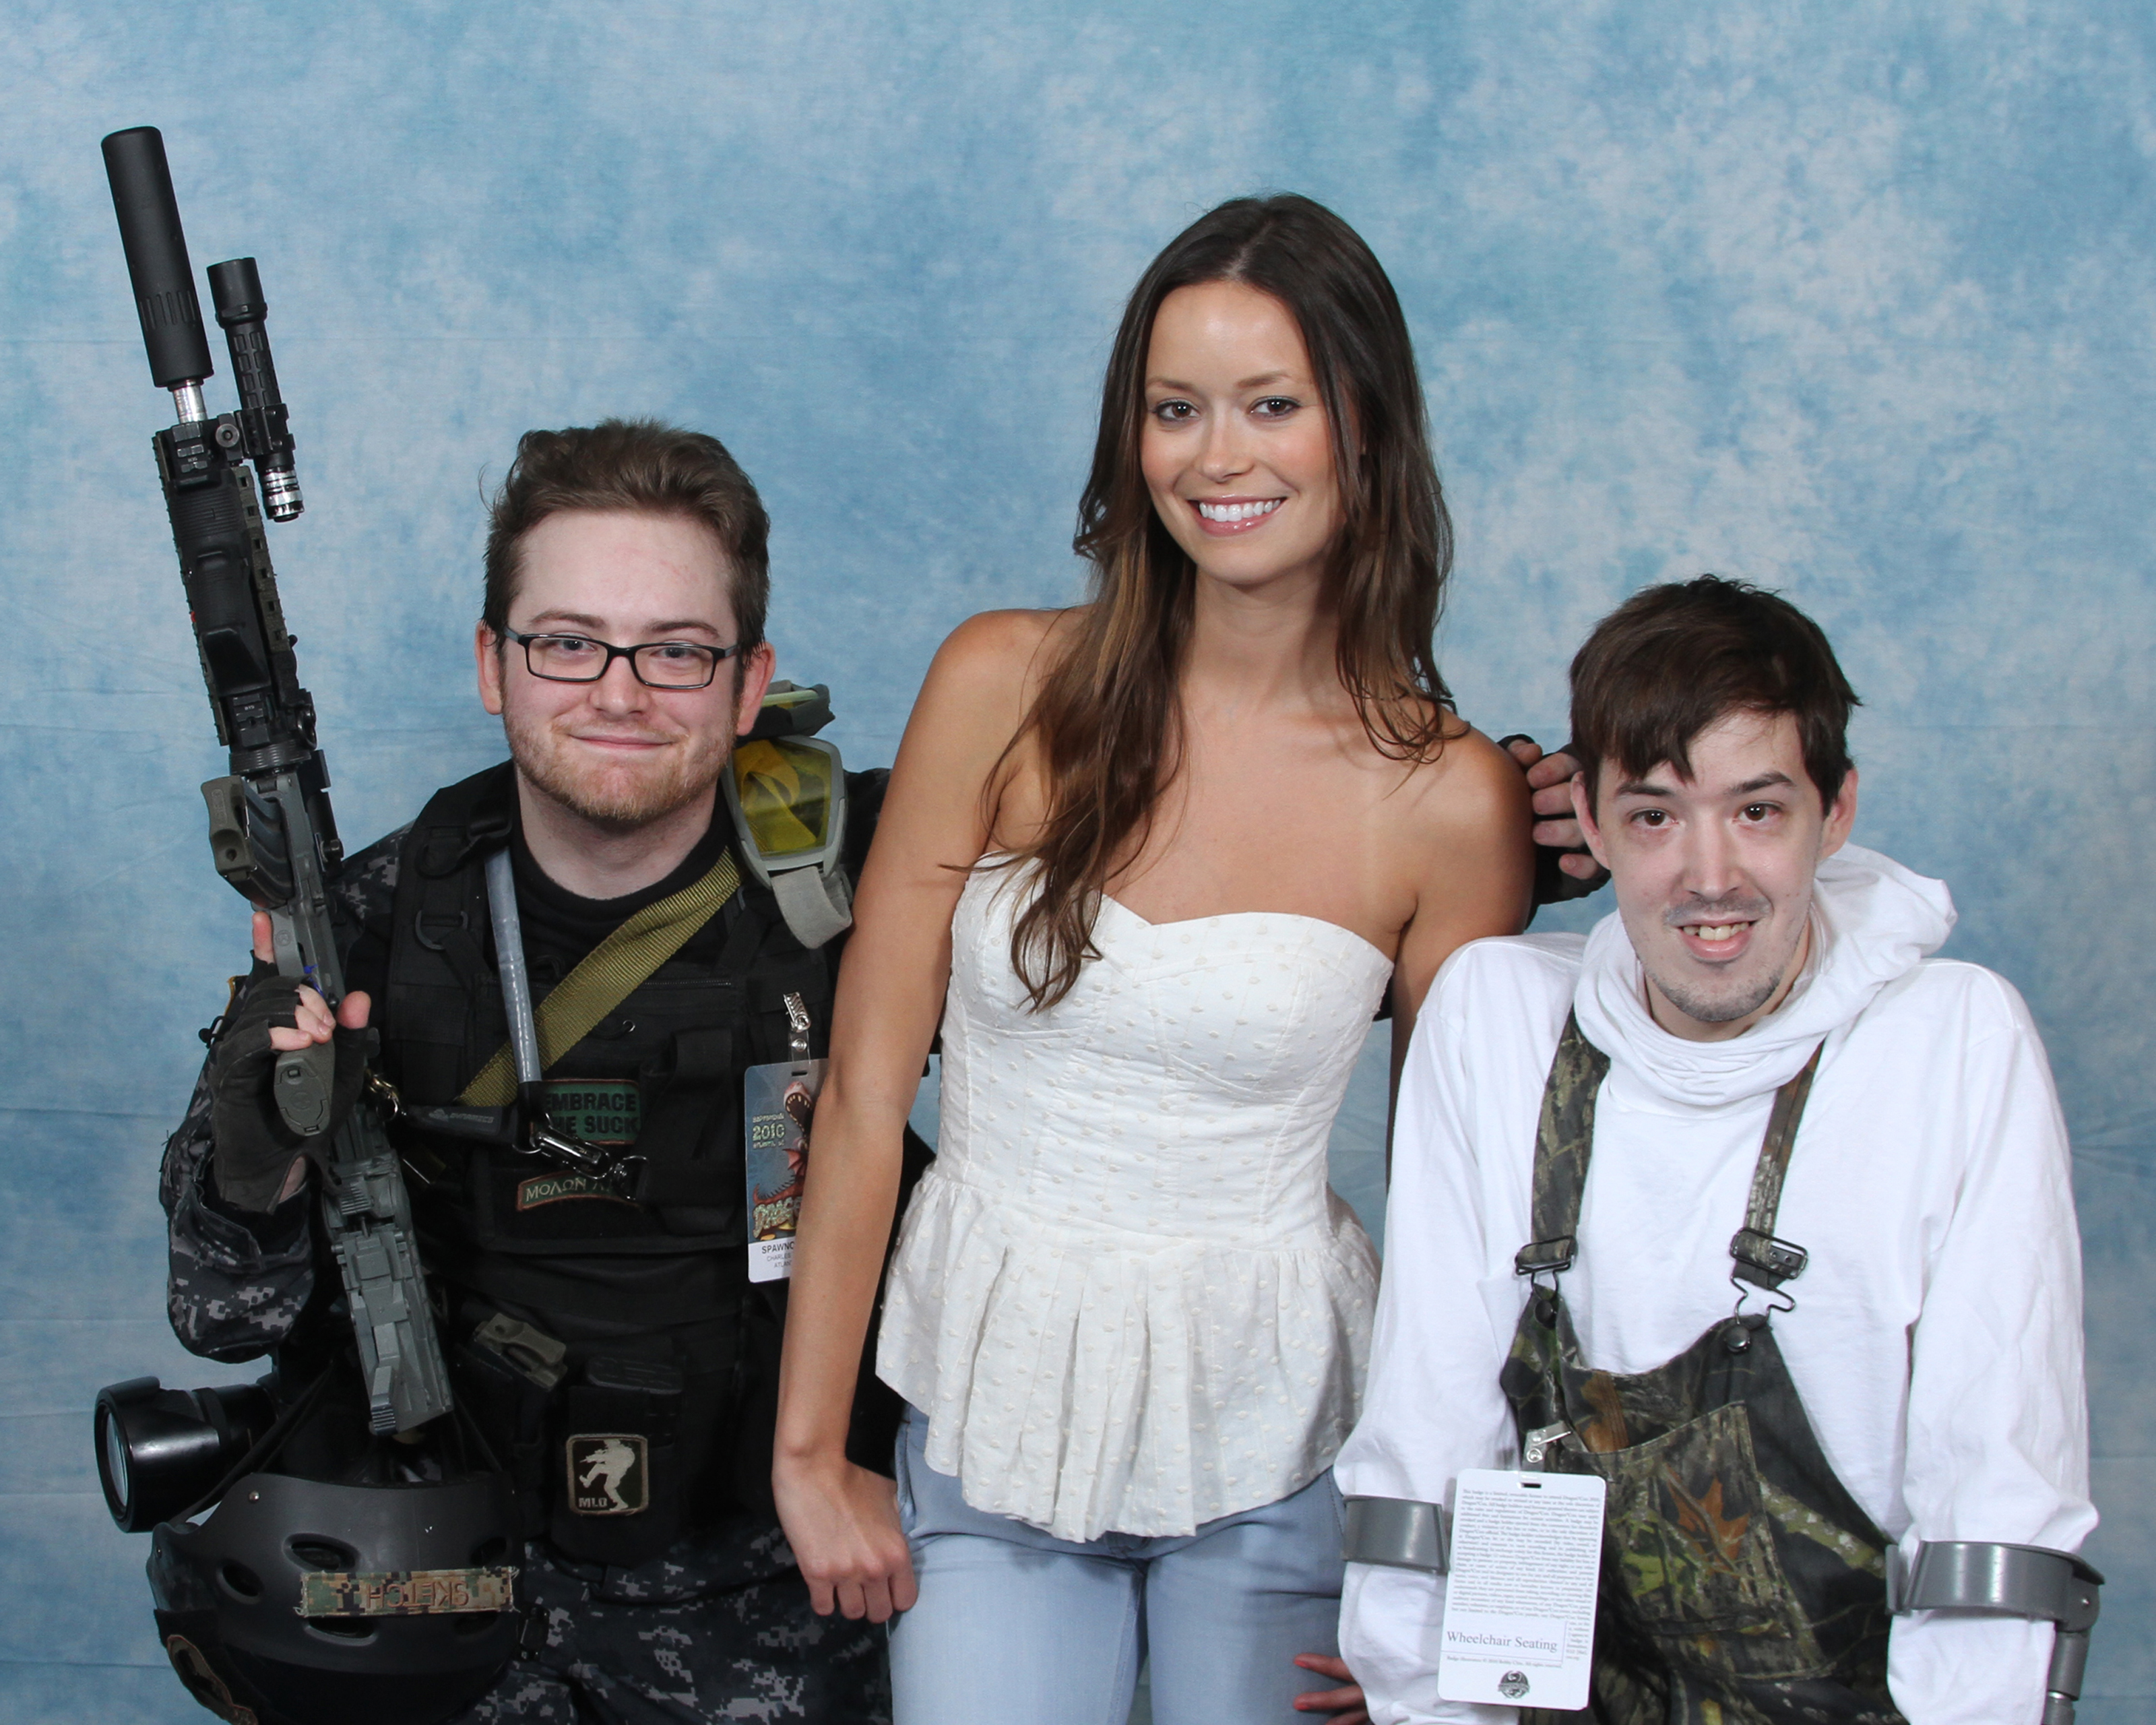 summer glau and cosplay fans